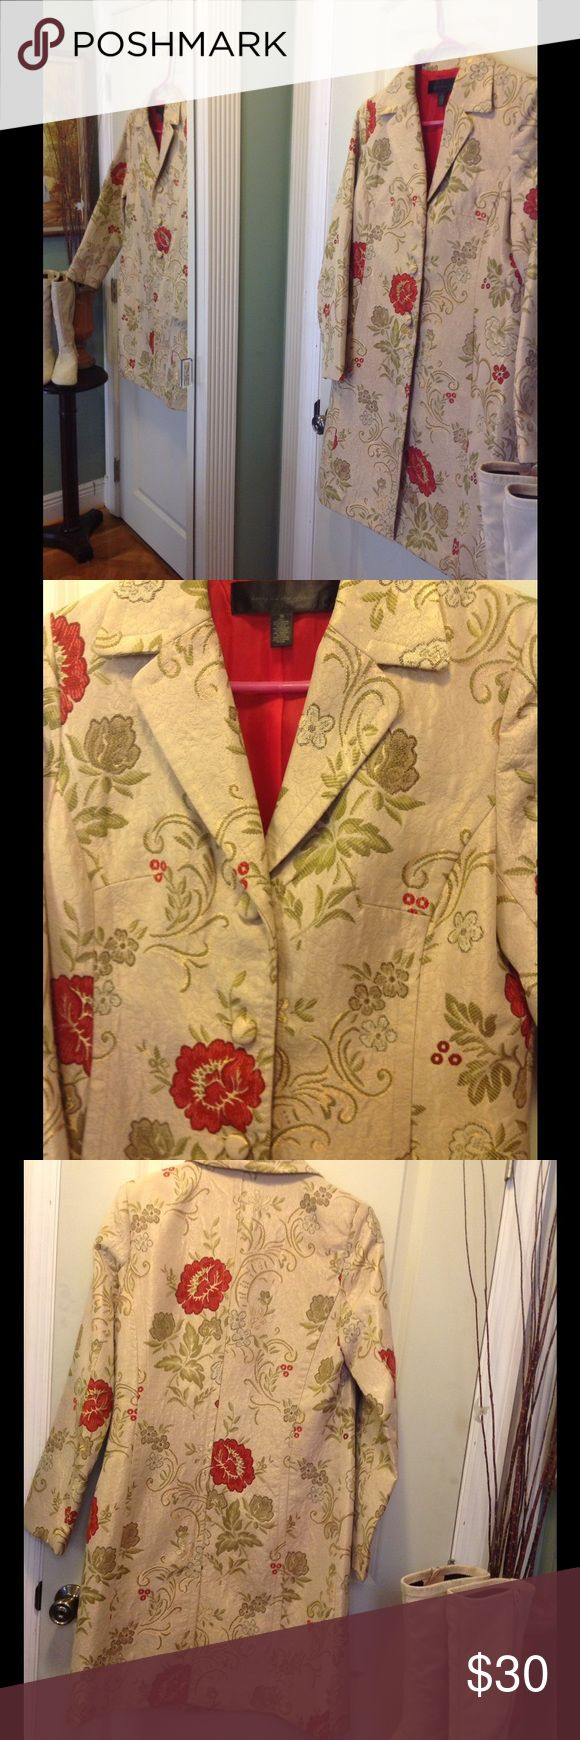 """Asian tapestry gorgeous long jacket Gorgeous gold/green/red Asian tapestry long jacket. In size 10 by apostrophe  60%polyester and 40%rayon. Fully lined in red satin   Bust measures 19""""x2. Waist 18""""x2. 2 pockets. 3 covered button details with pleated look on front for slimming effect 37"""" long sleeves 25"""" Apostrophe Jackets & Coats Pea Coats"""